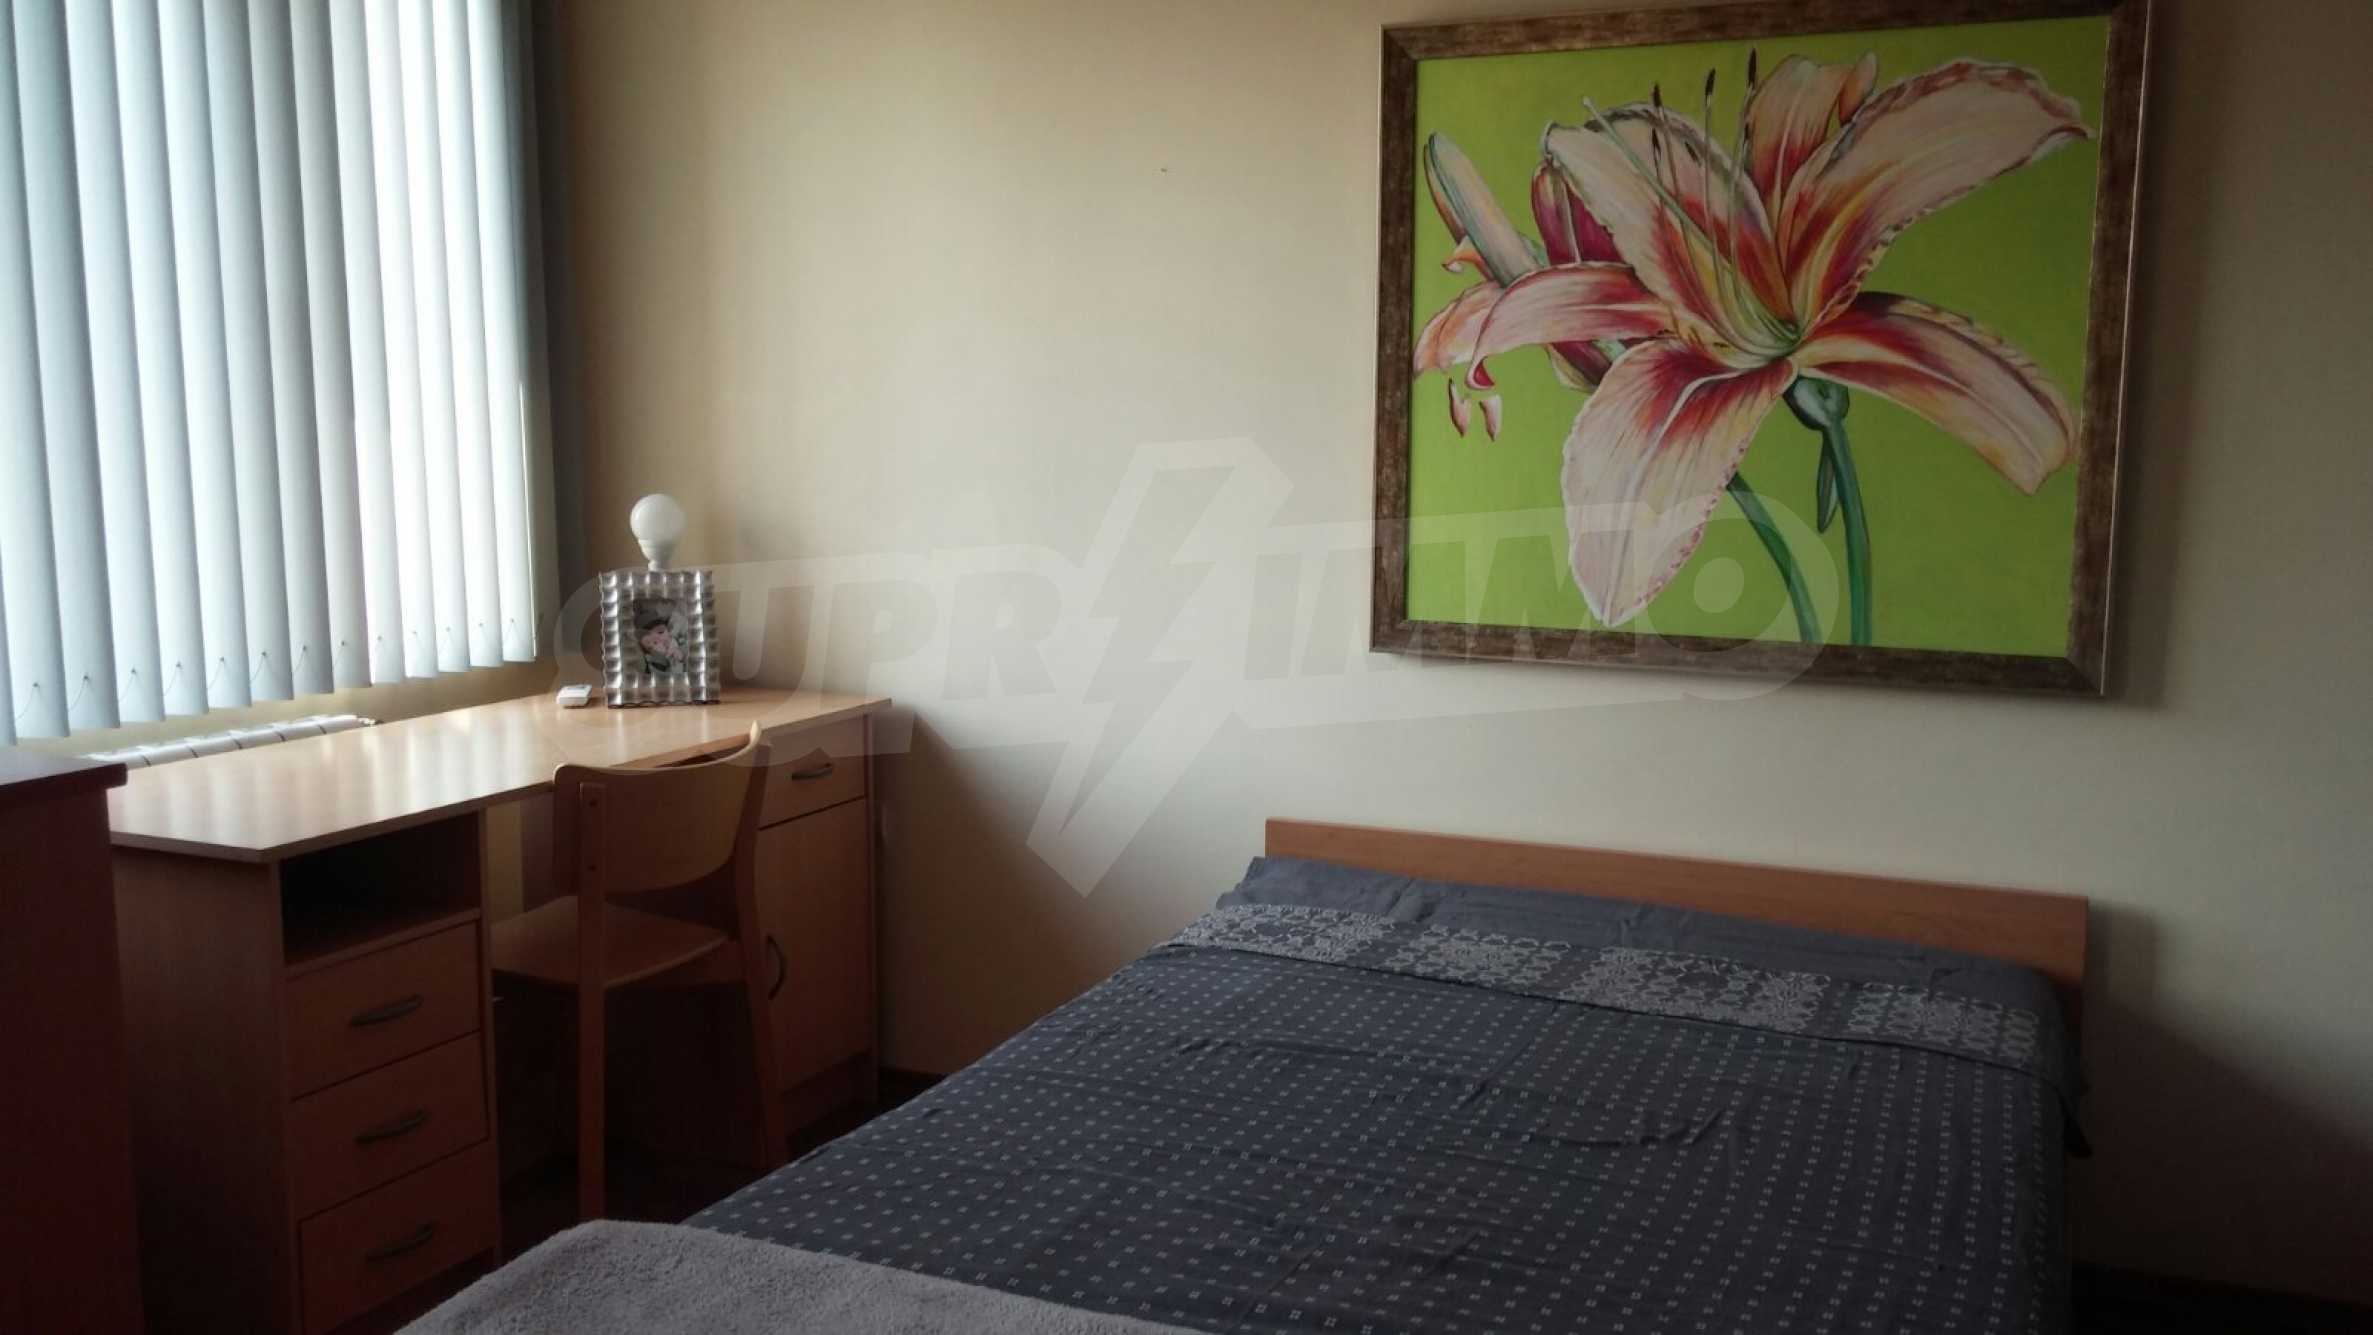 Spacious apartment in the city center 5